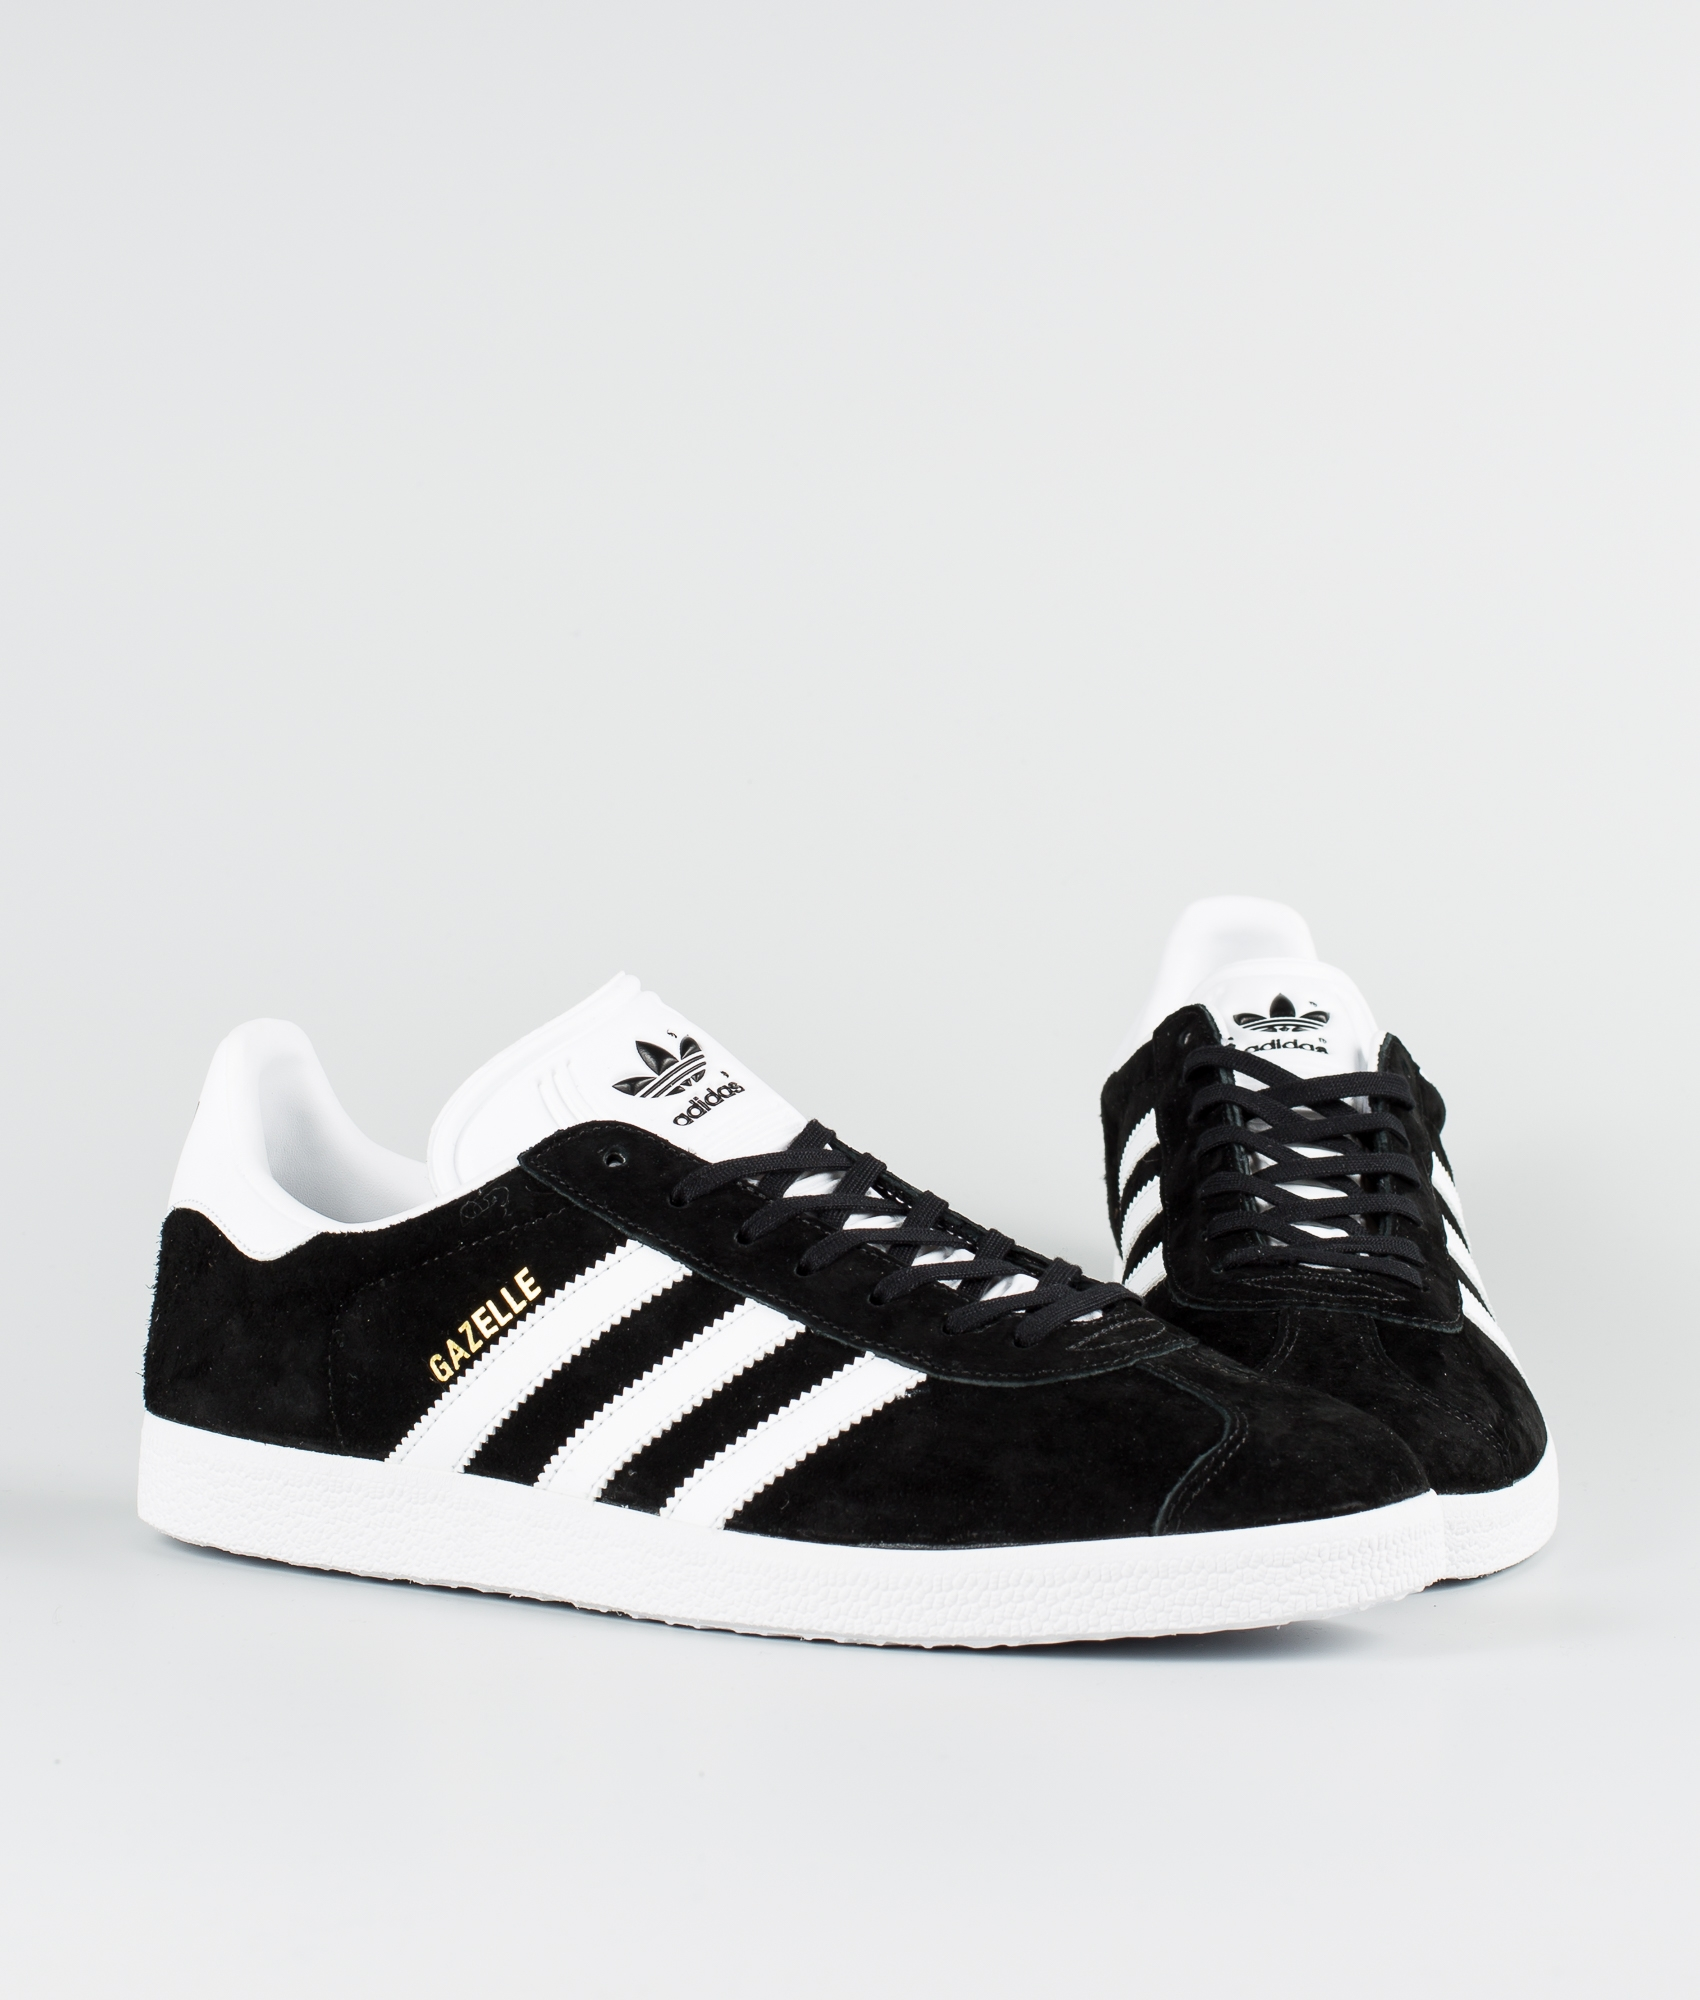 adidas Gives the Gazelle the